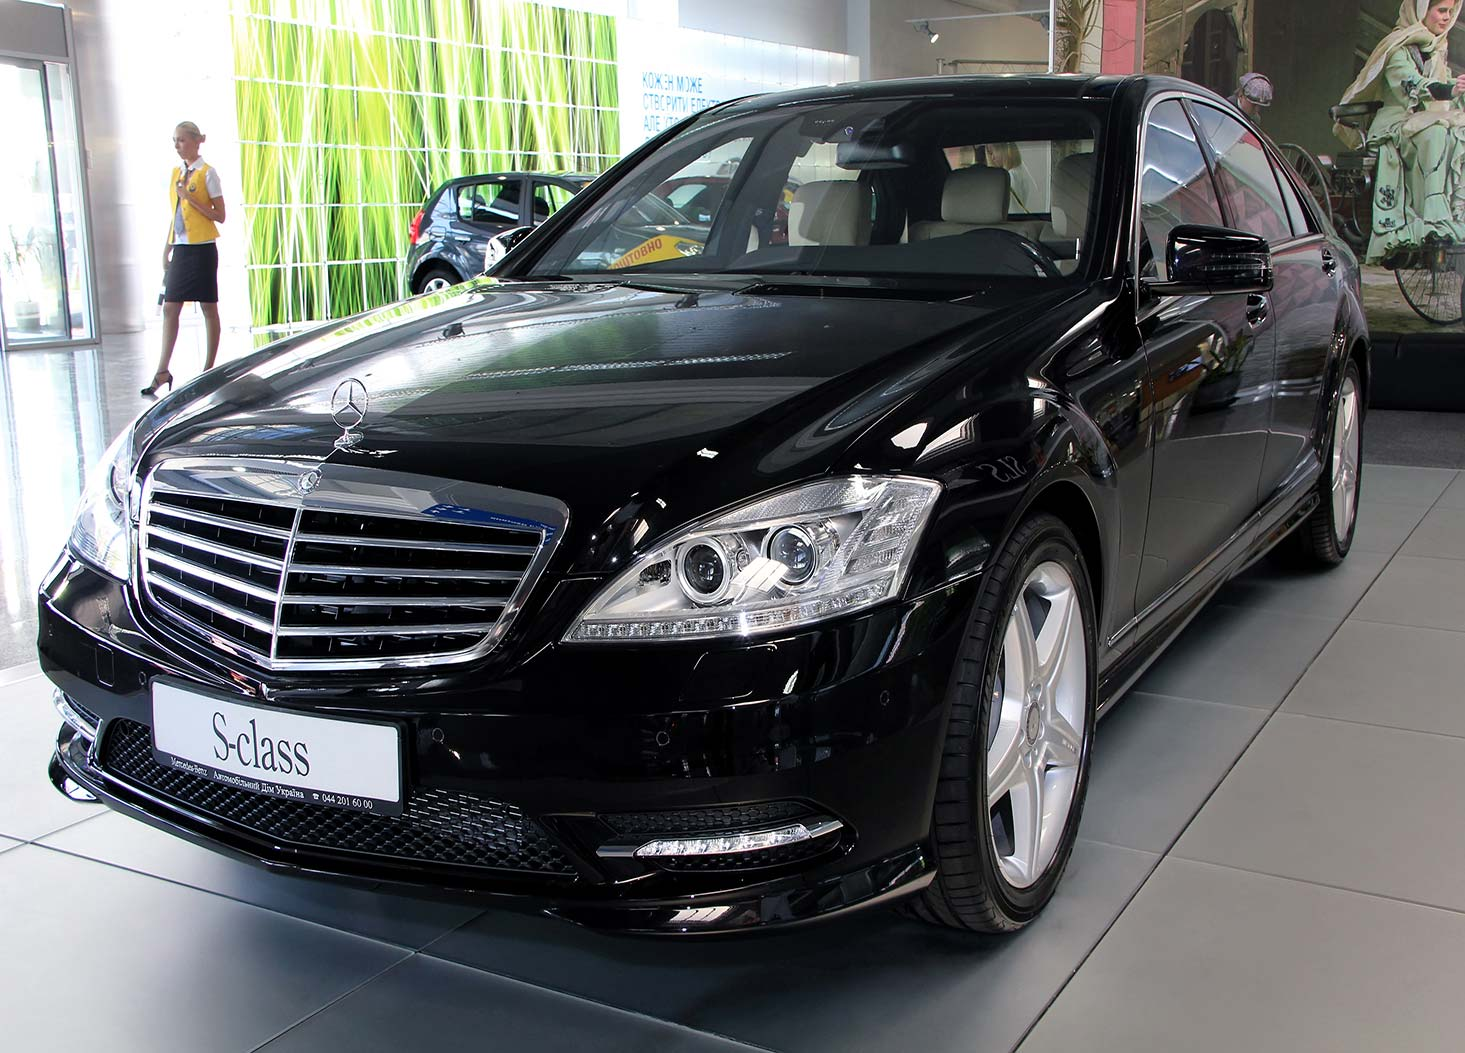 S-class Mercedes limo